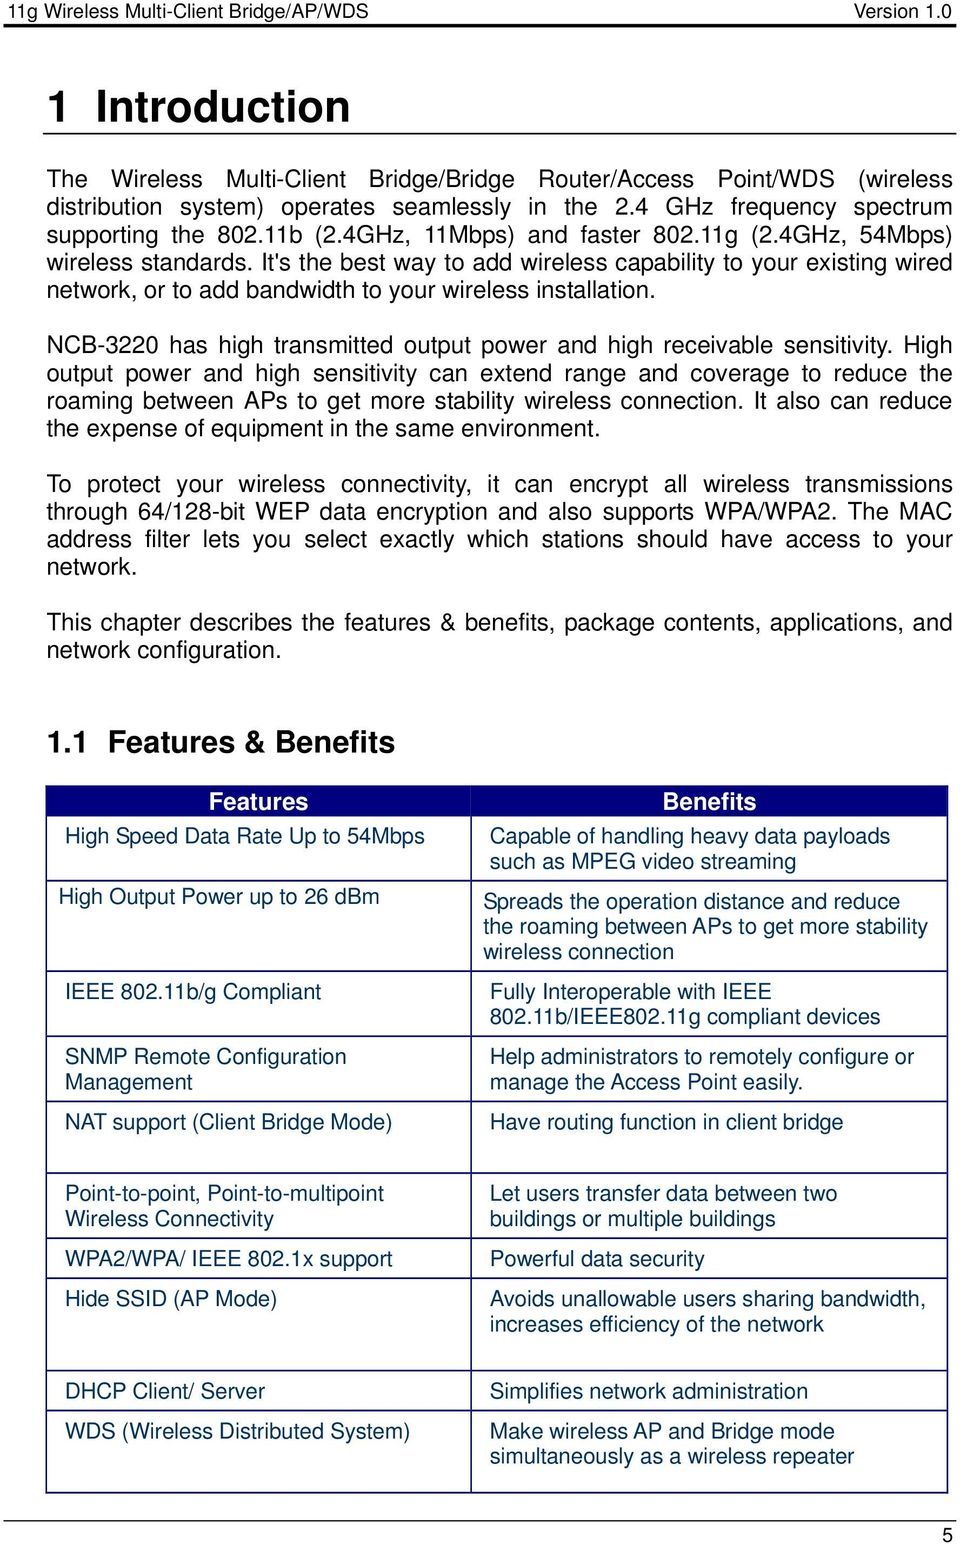 NCB-3220 has high transmitted output power and high receivable sensitivity.